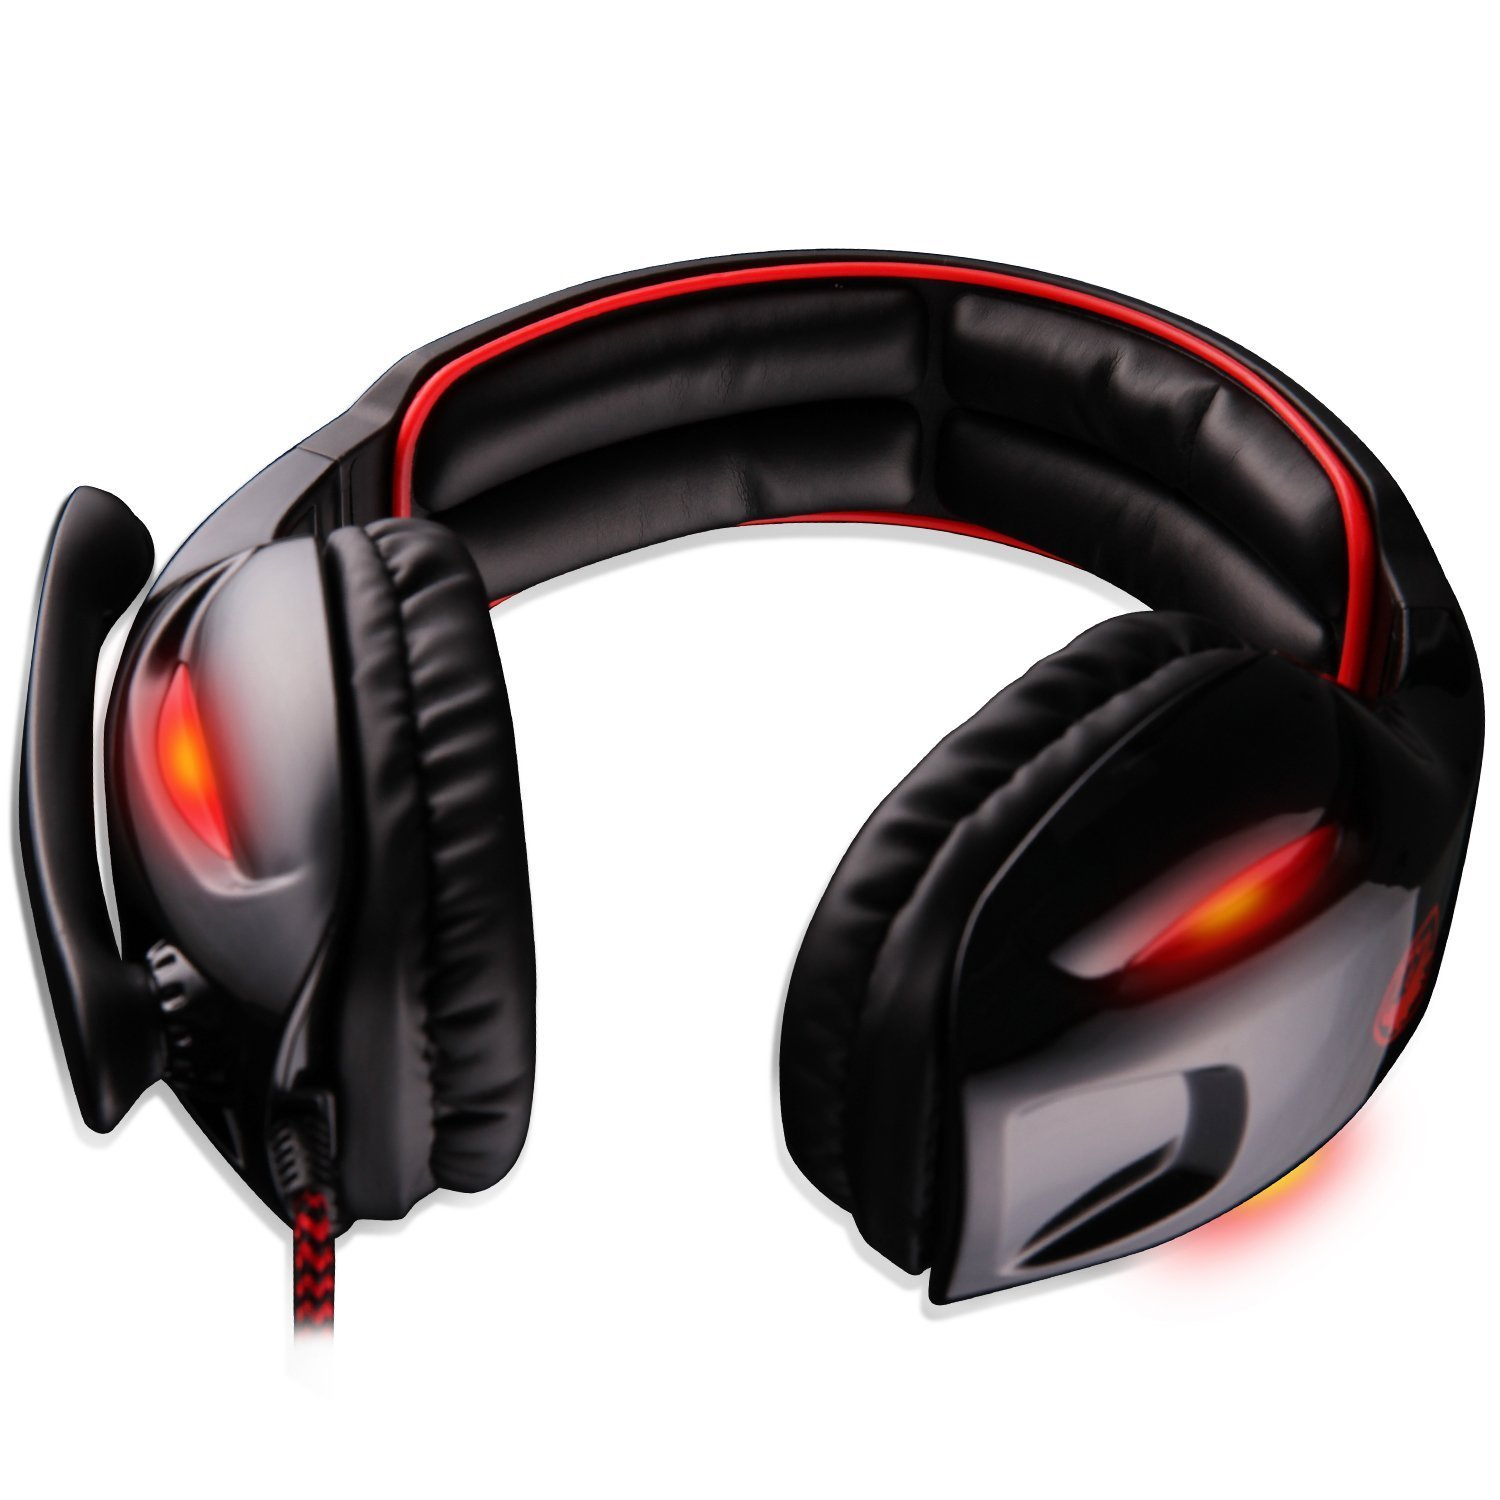 Sades Sa902 71 Channel Virtual Usb Surround Stereo Light Switch Wiring Game Wired Pc Gaming Headset Over Ear Headphones With Mic Revolution Volume Control Noise Canceling Led Black Red Computers Accessories